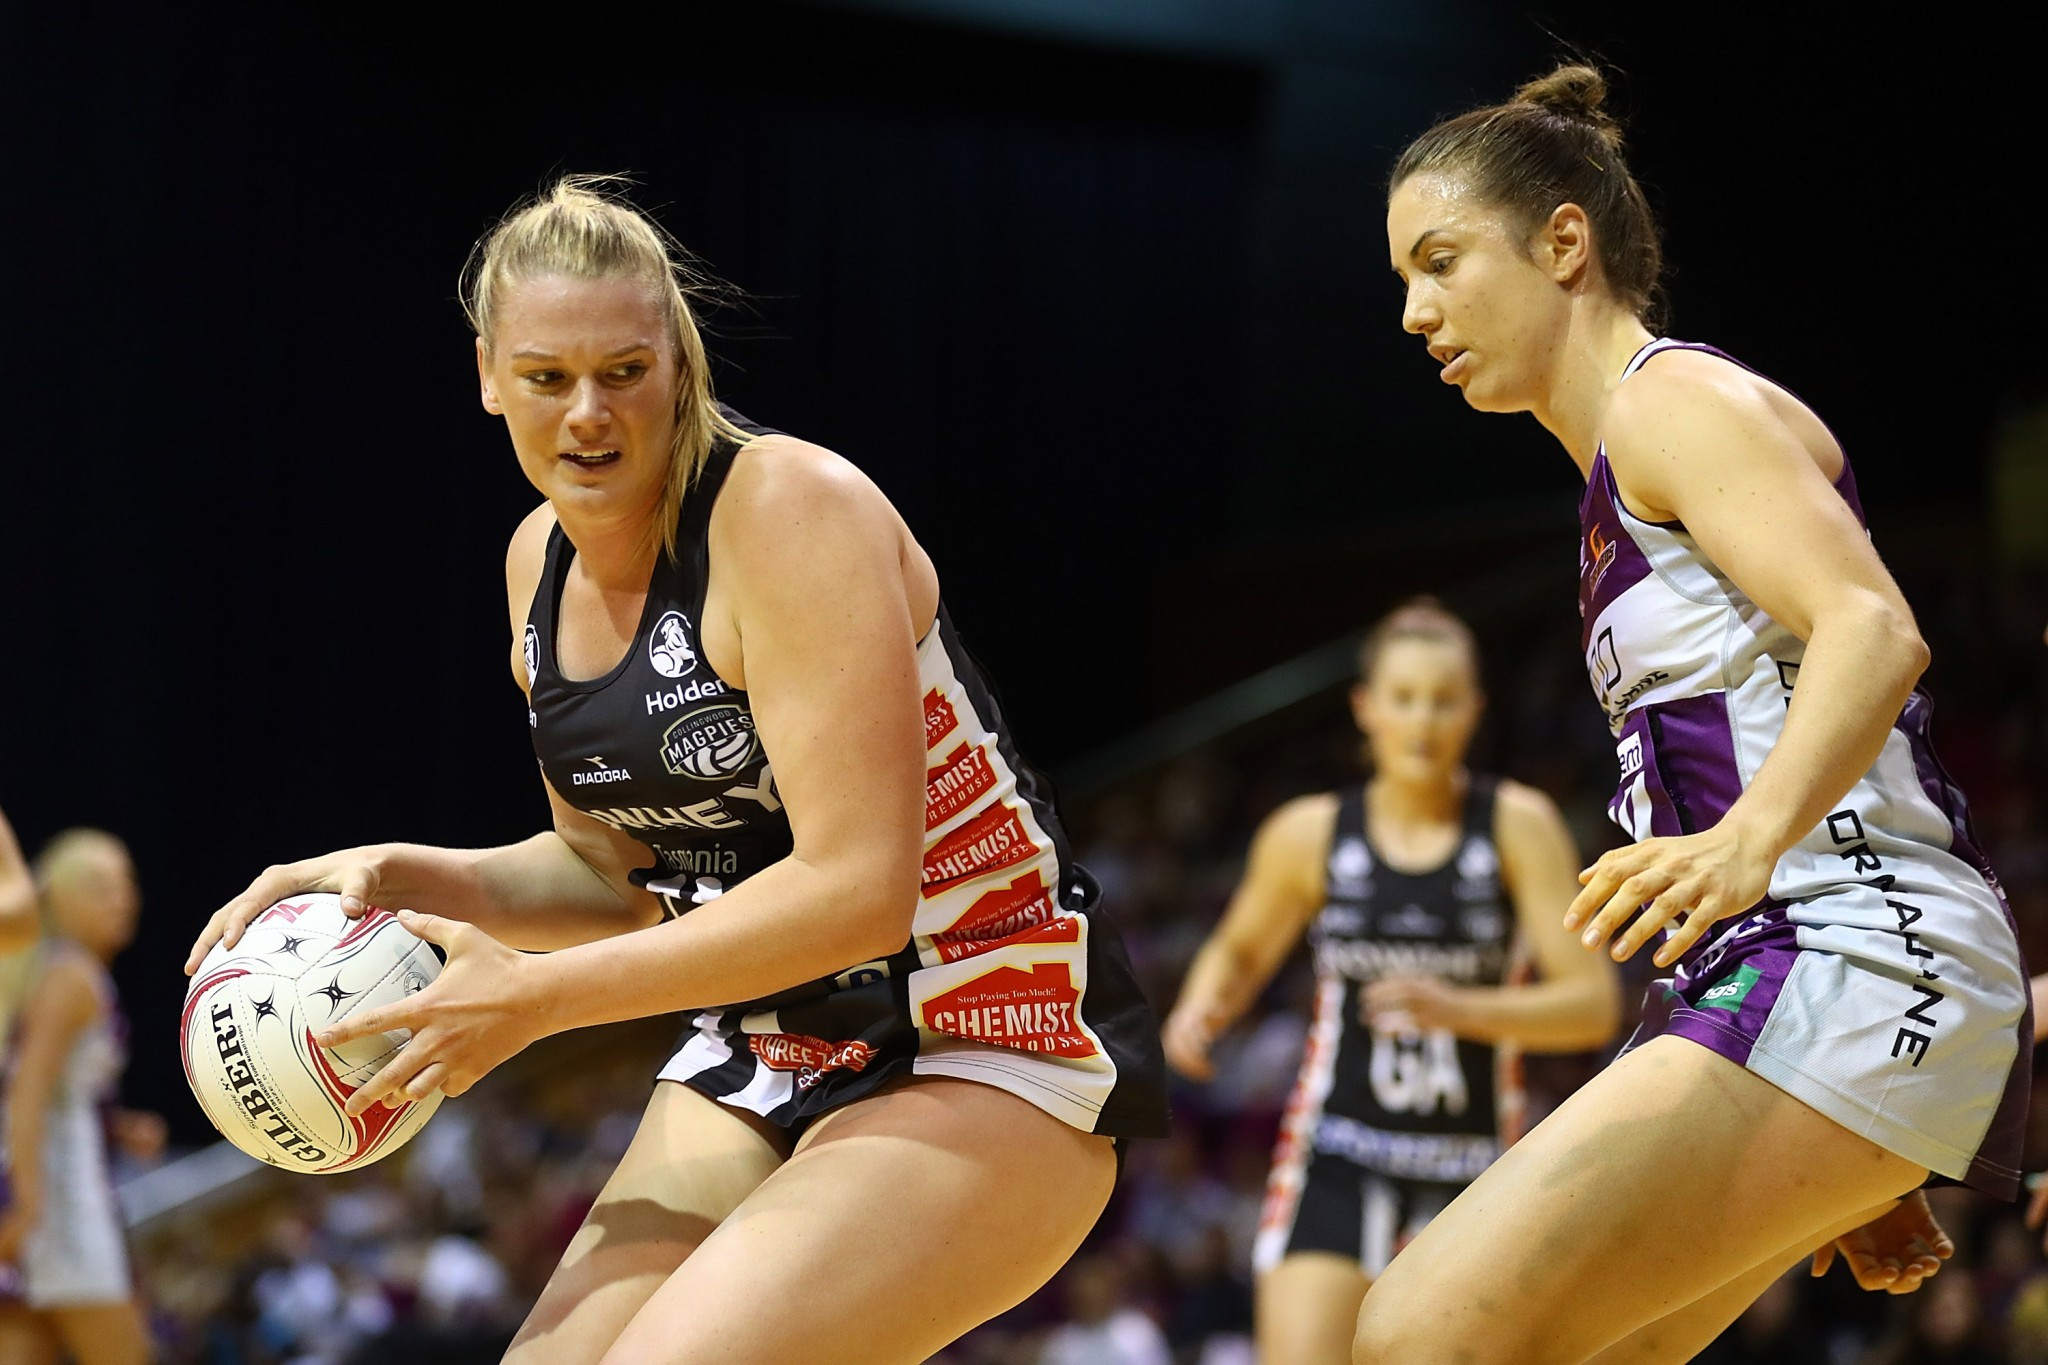 Suncorp Super Netball team Collingwood Magpies will play Wales as a warm-up for the Commonwealth Games ©Getty Images